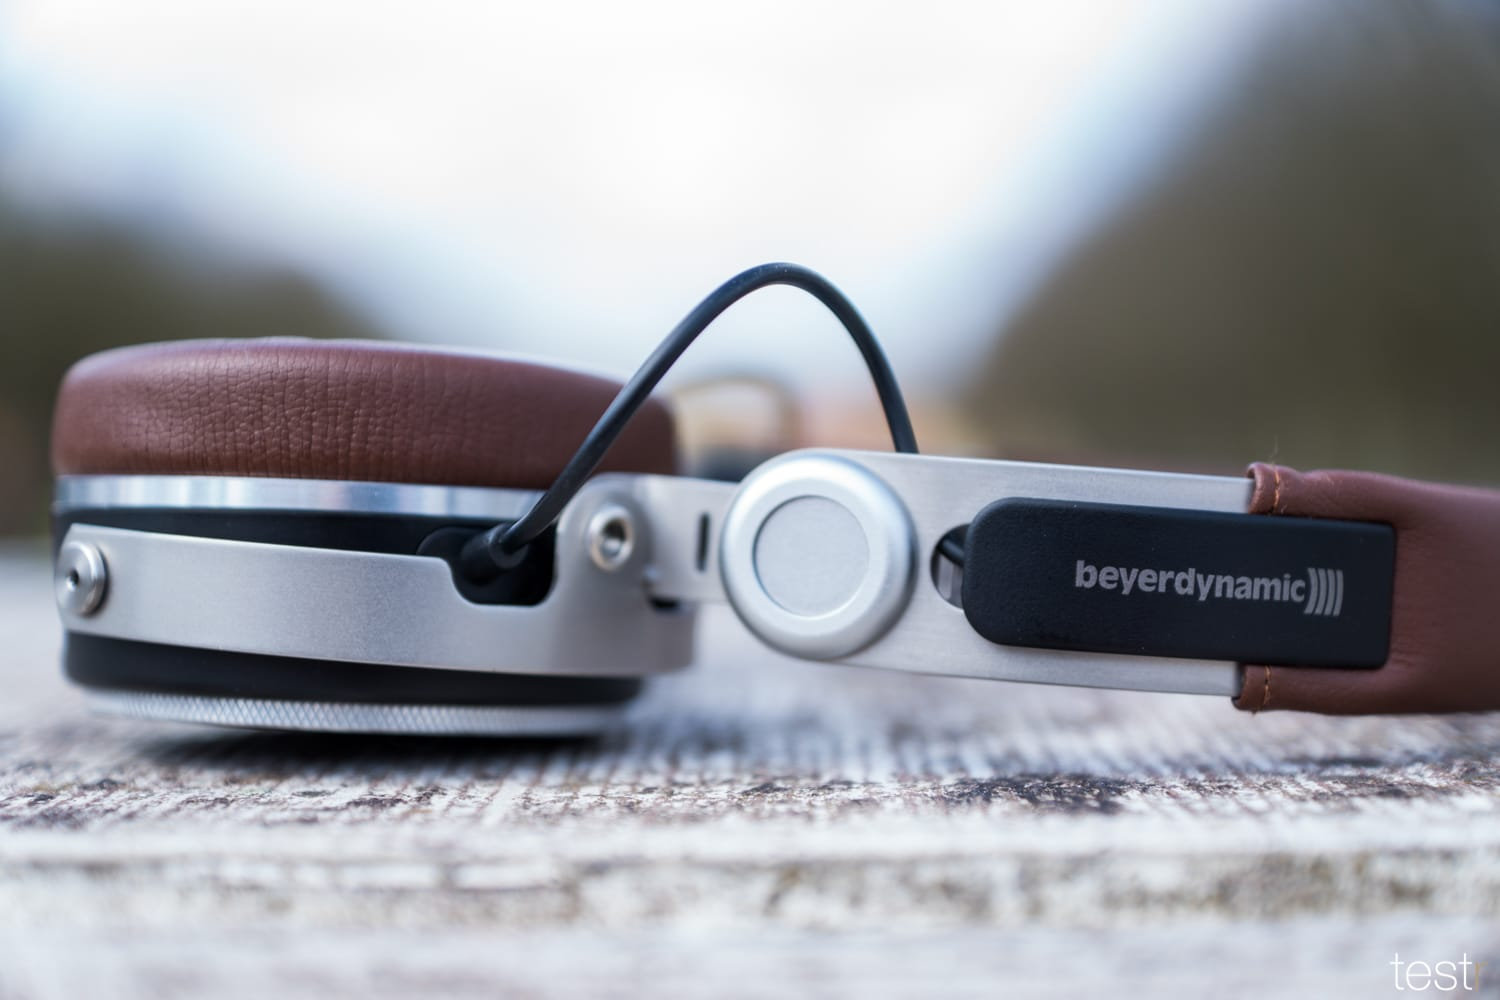 Bayerdynamic Avento Wireless 10